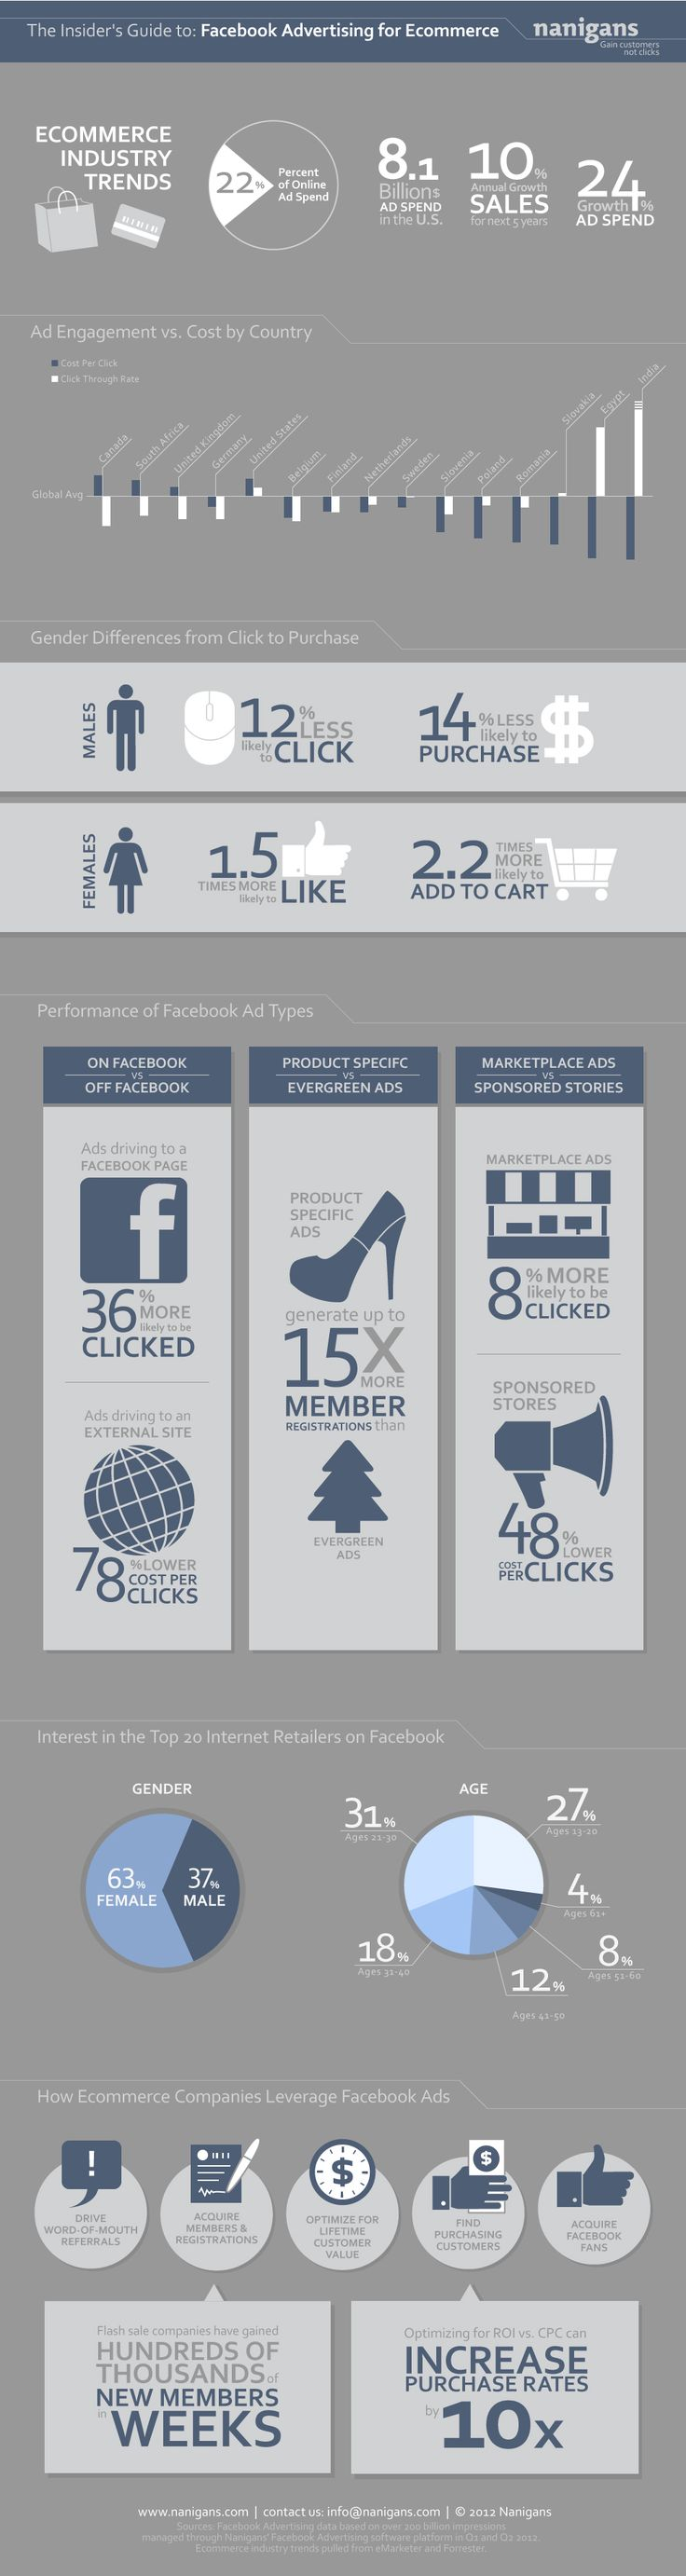 Insider's Guide to Facebook Ad